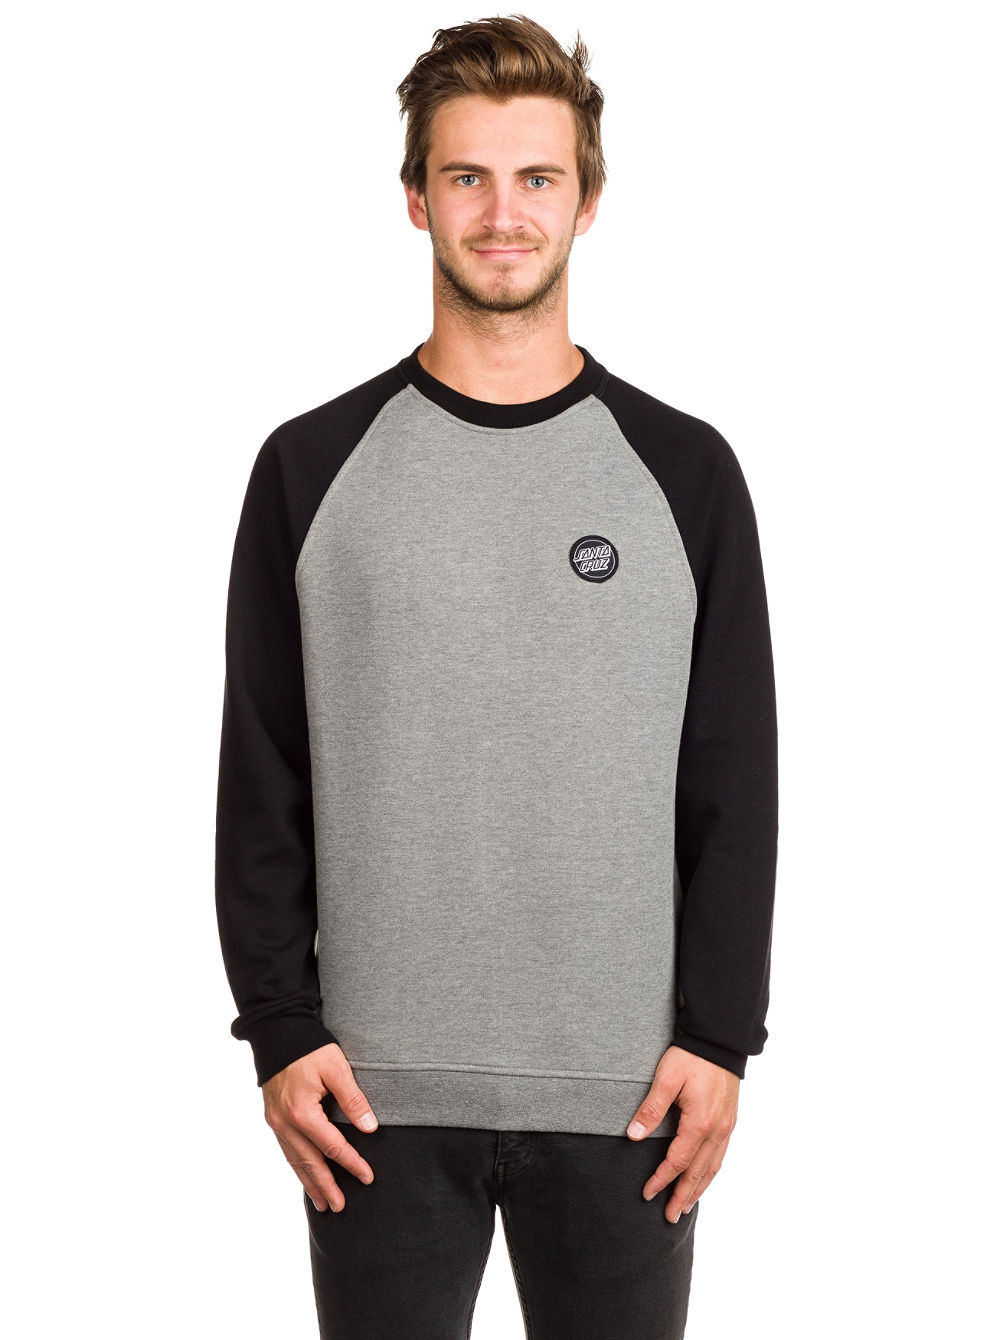 Outline Dot Crew Sweater